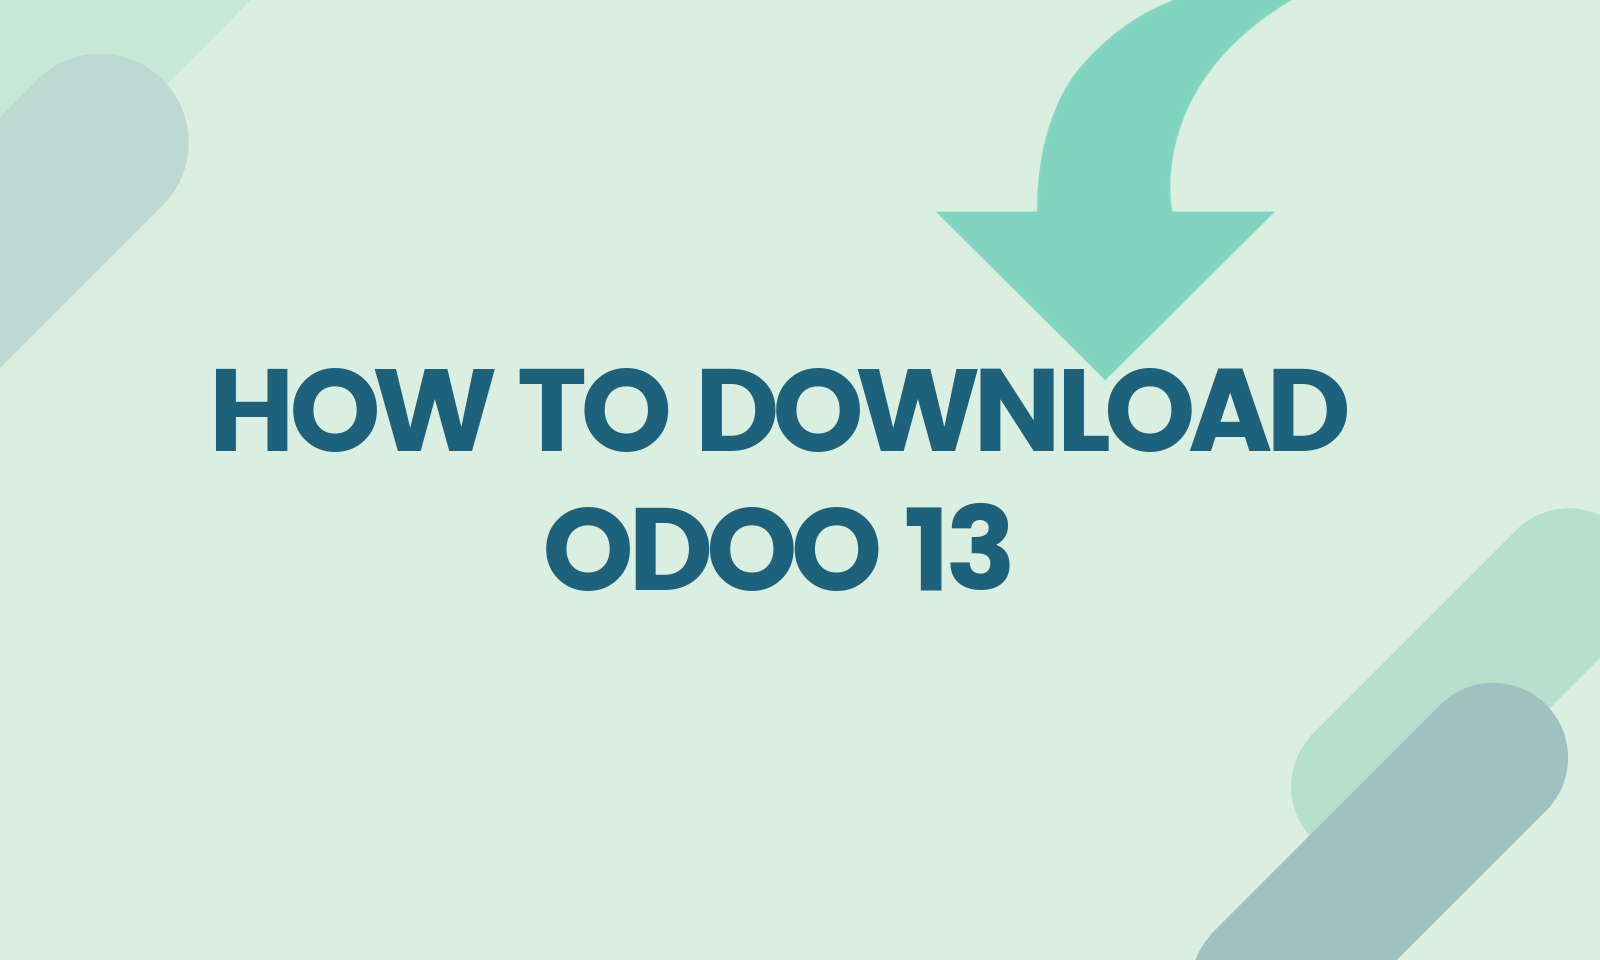 How to download odoo 13 – Odooblogs